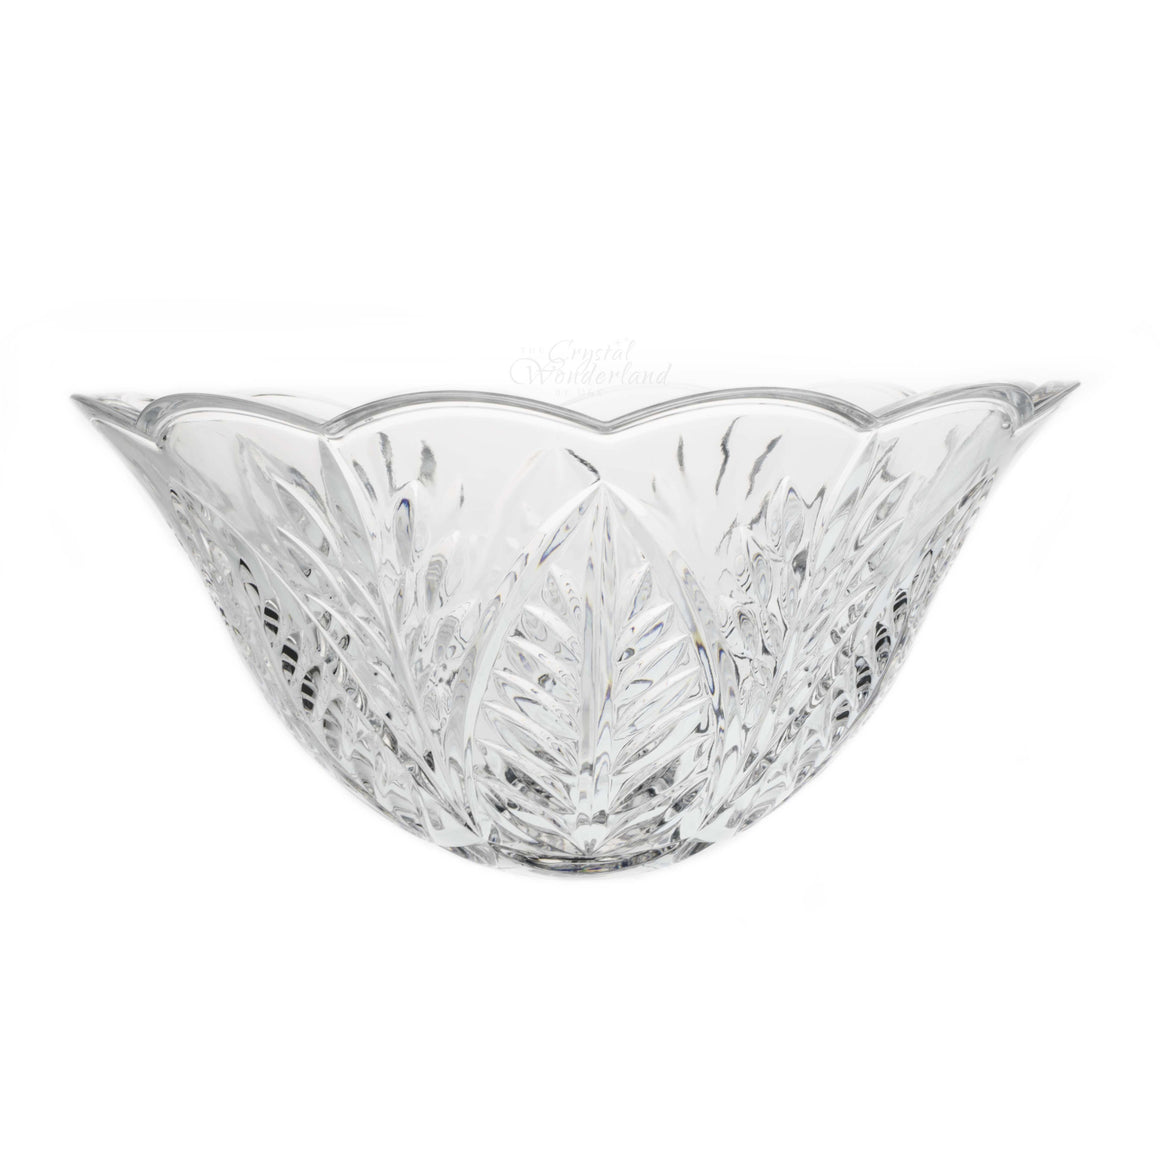 Lotus Big Glass Bowl - The Crystal Wonderland